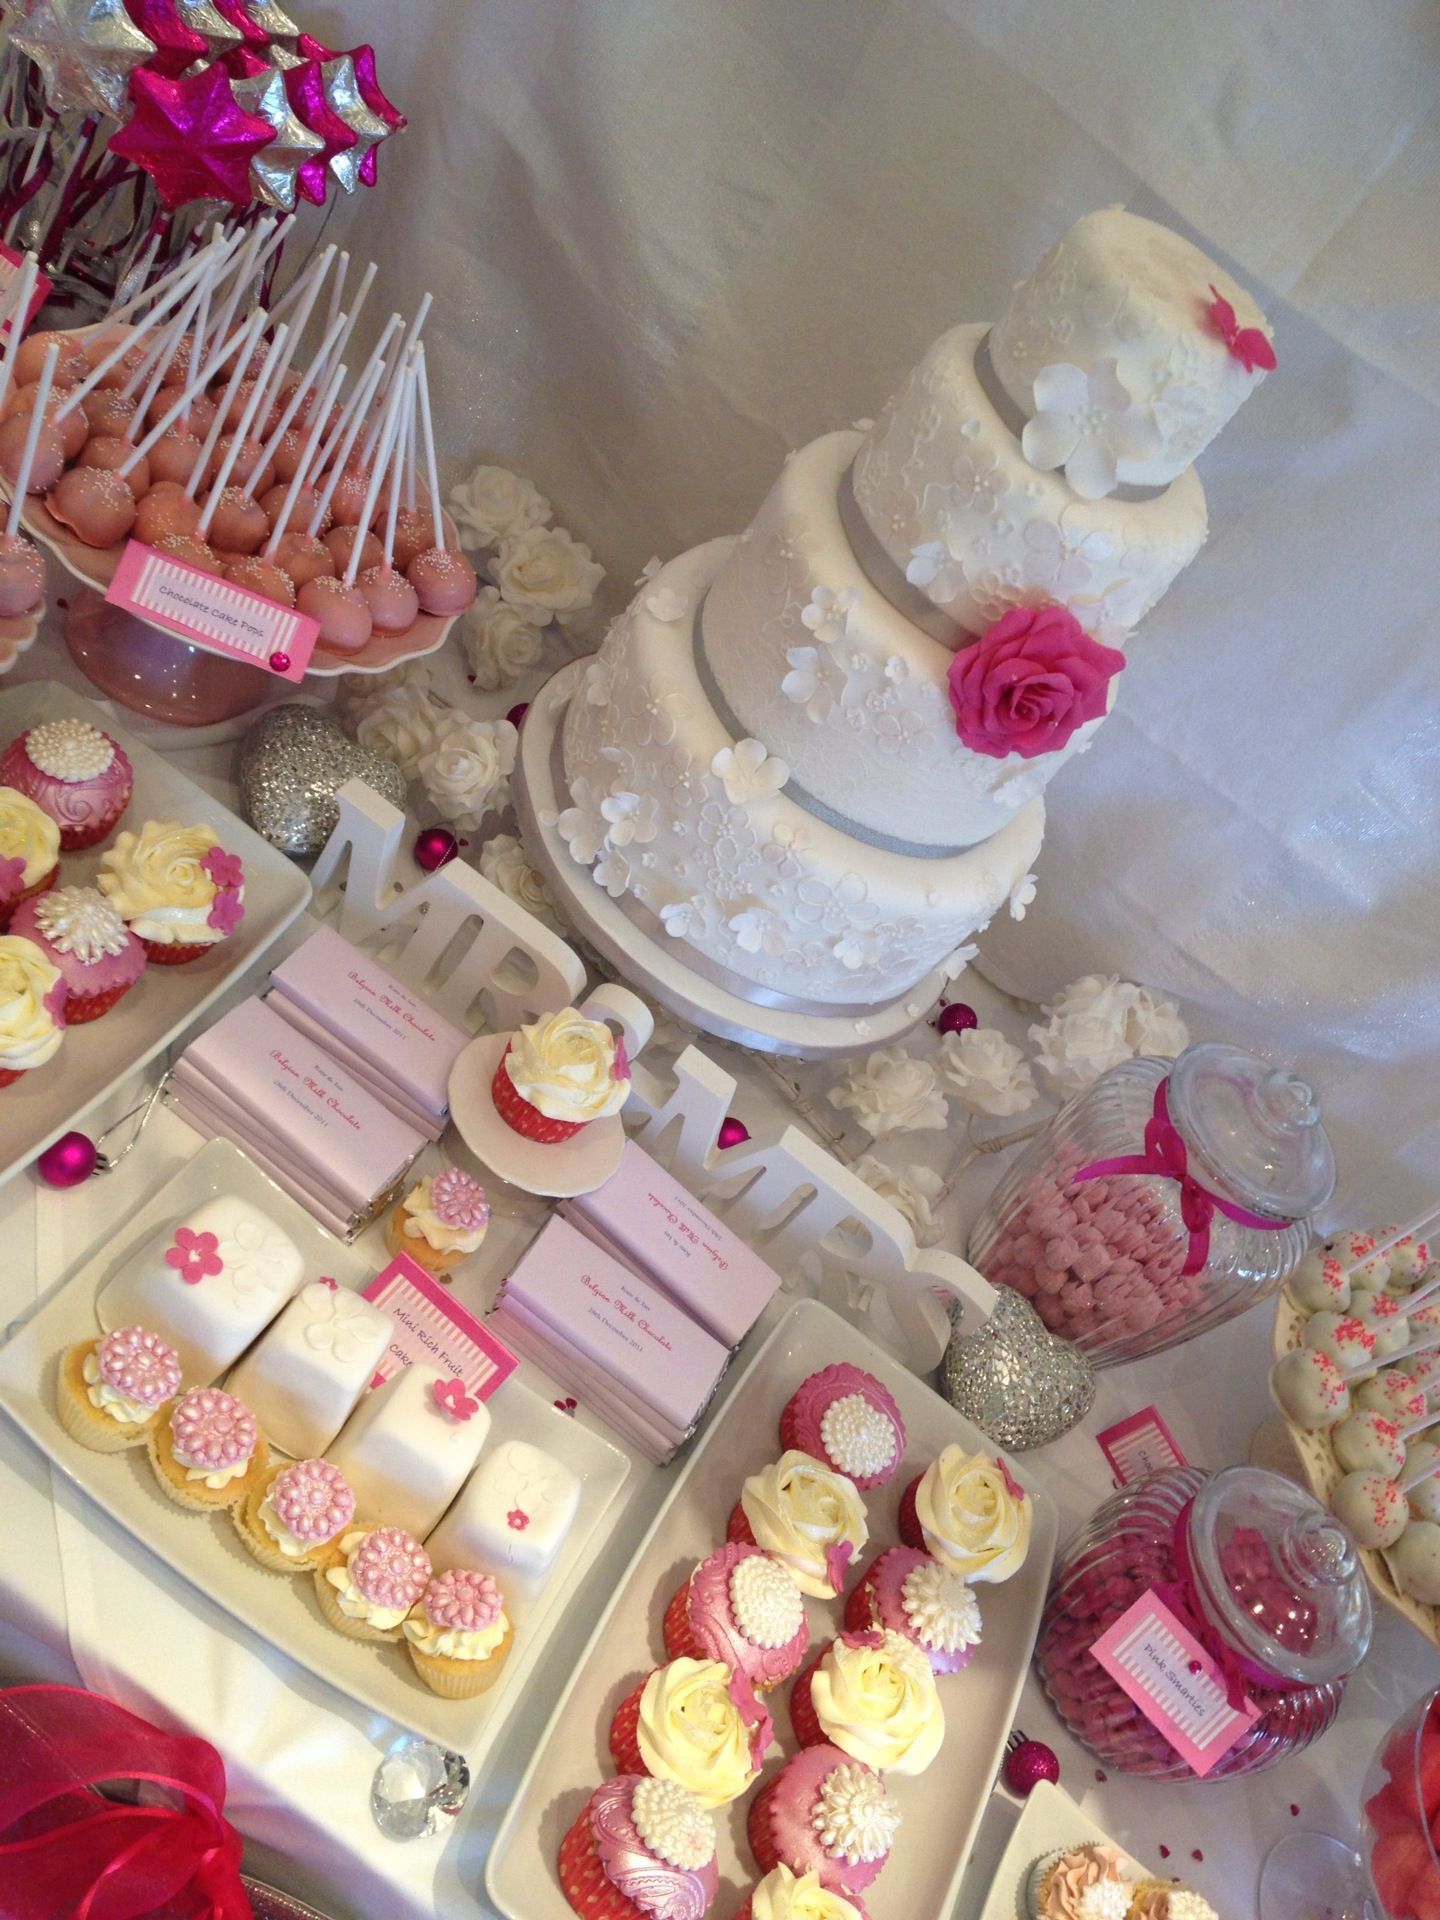 Wedding cake table decor ideas  dessart tables  Along with your dessert table we can also provide